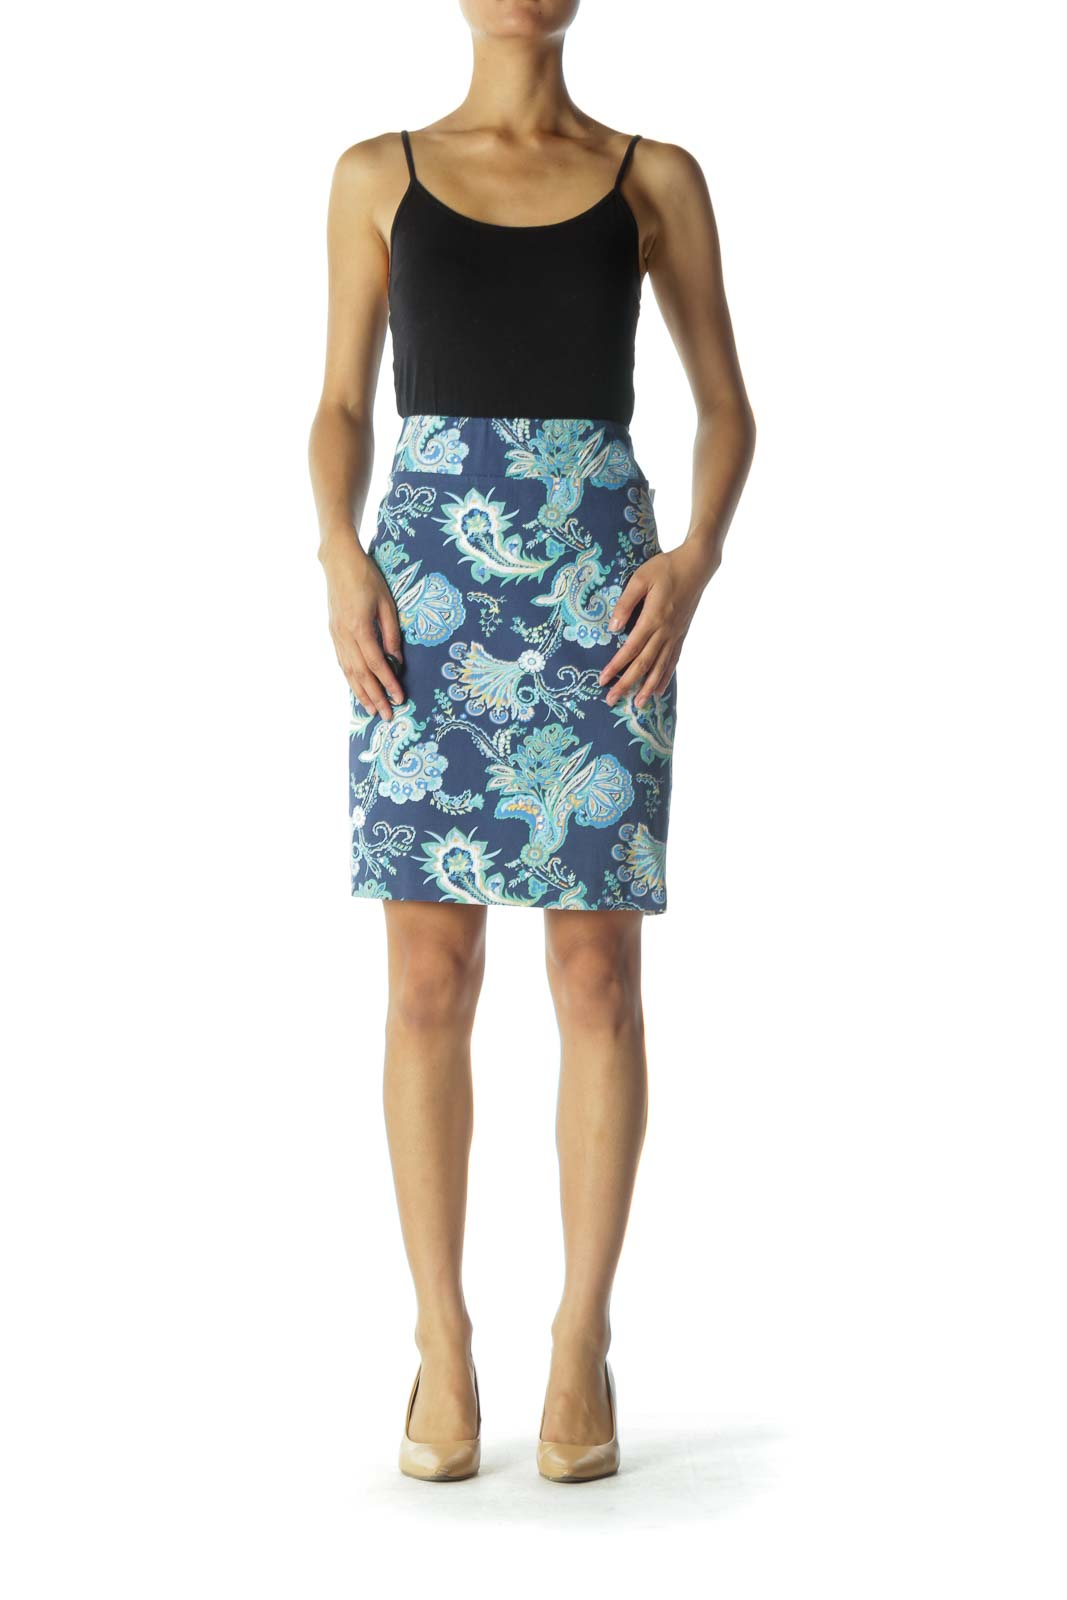 Blue and Green Paisley Print Pencil Skirt